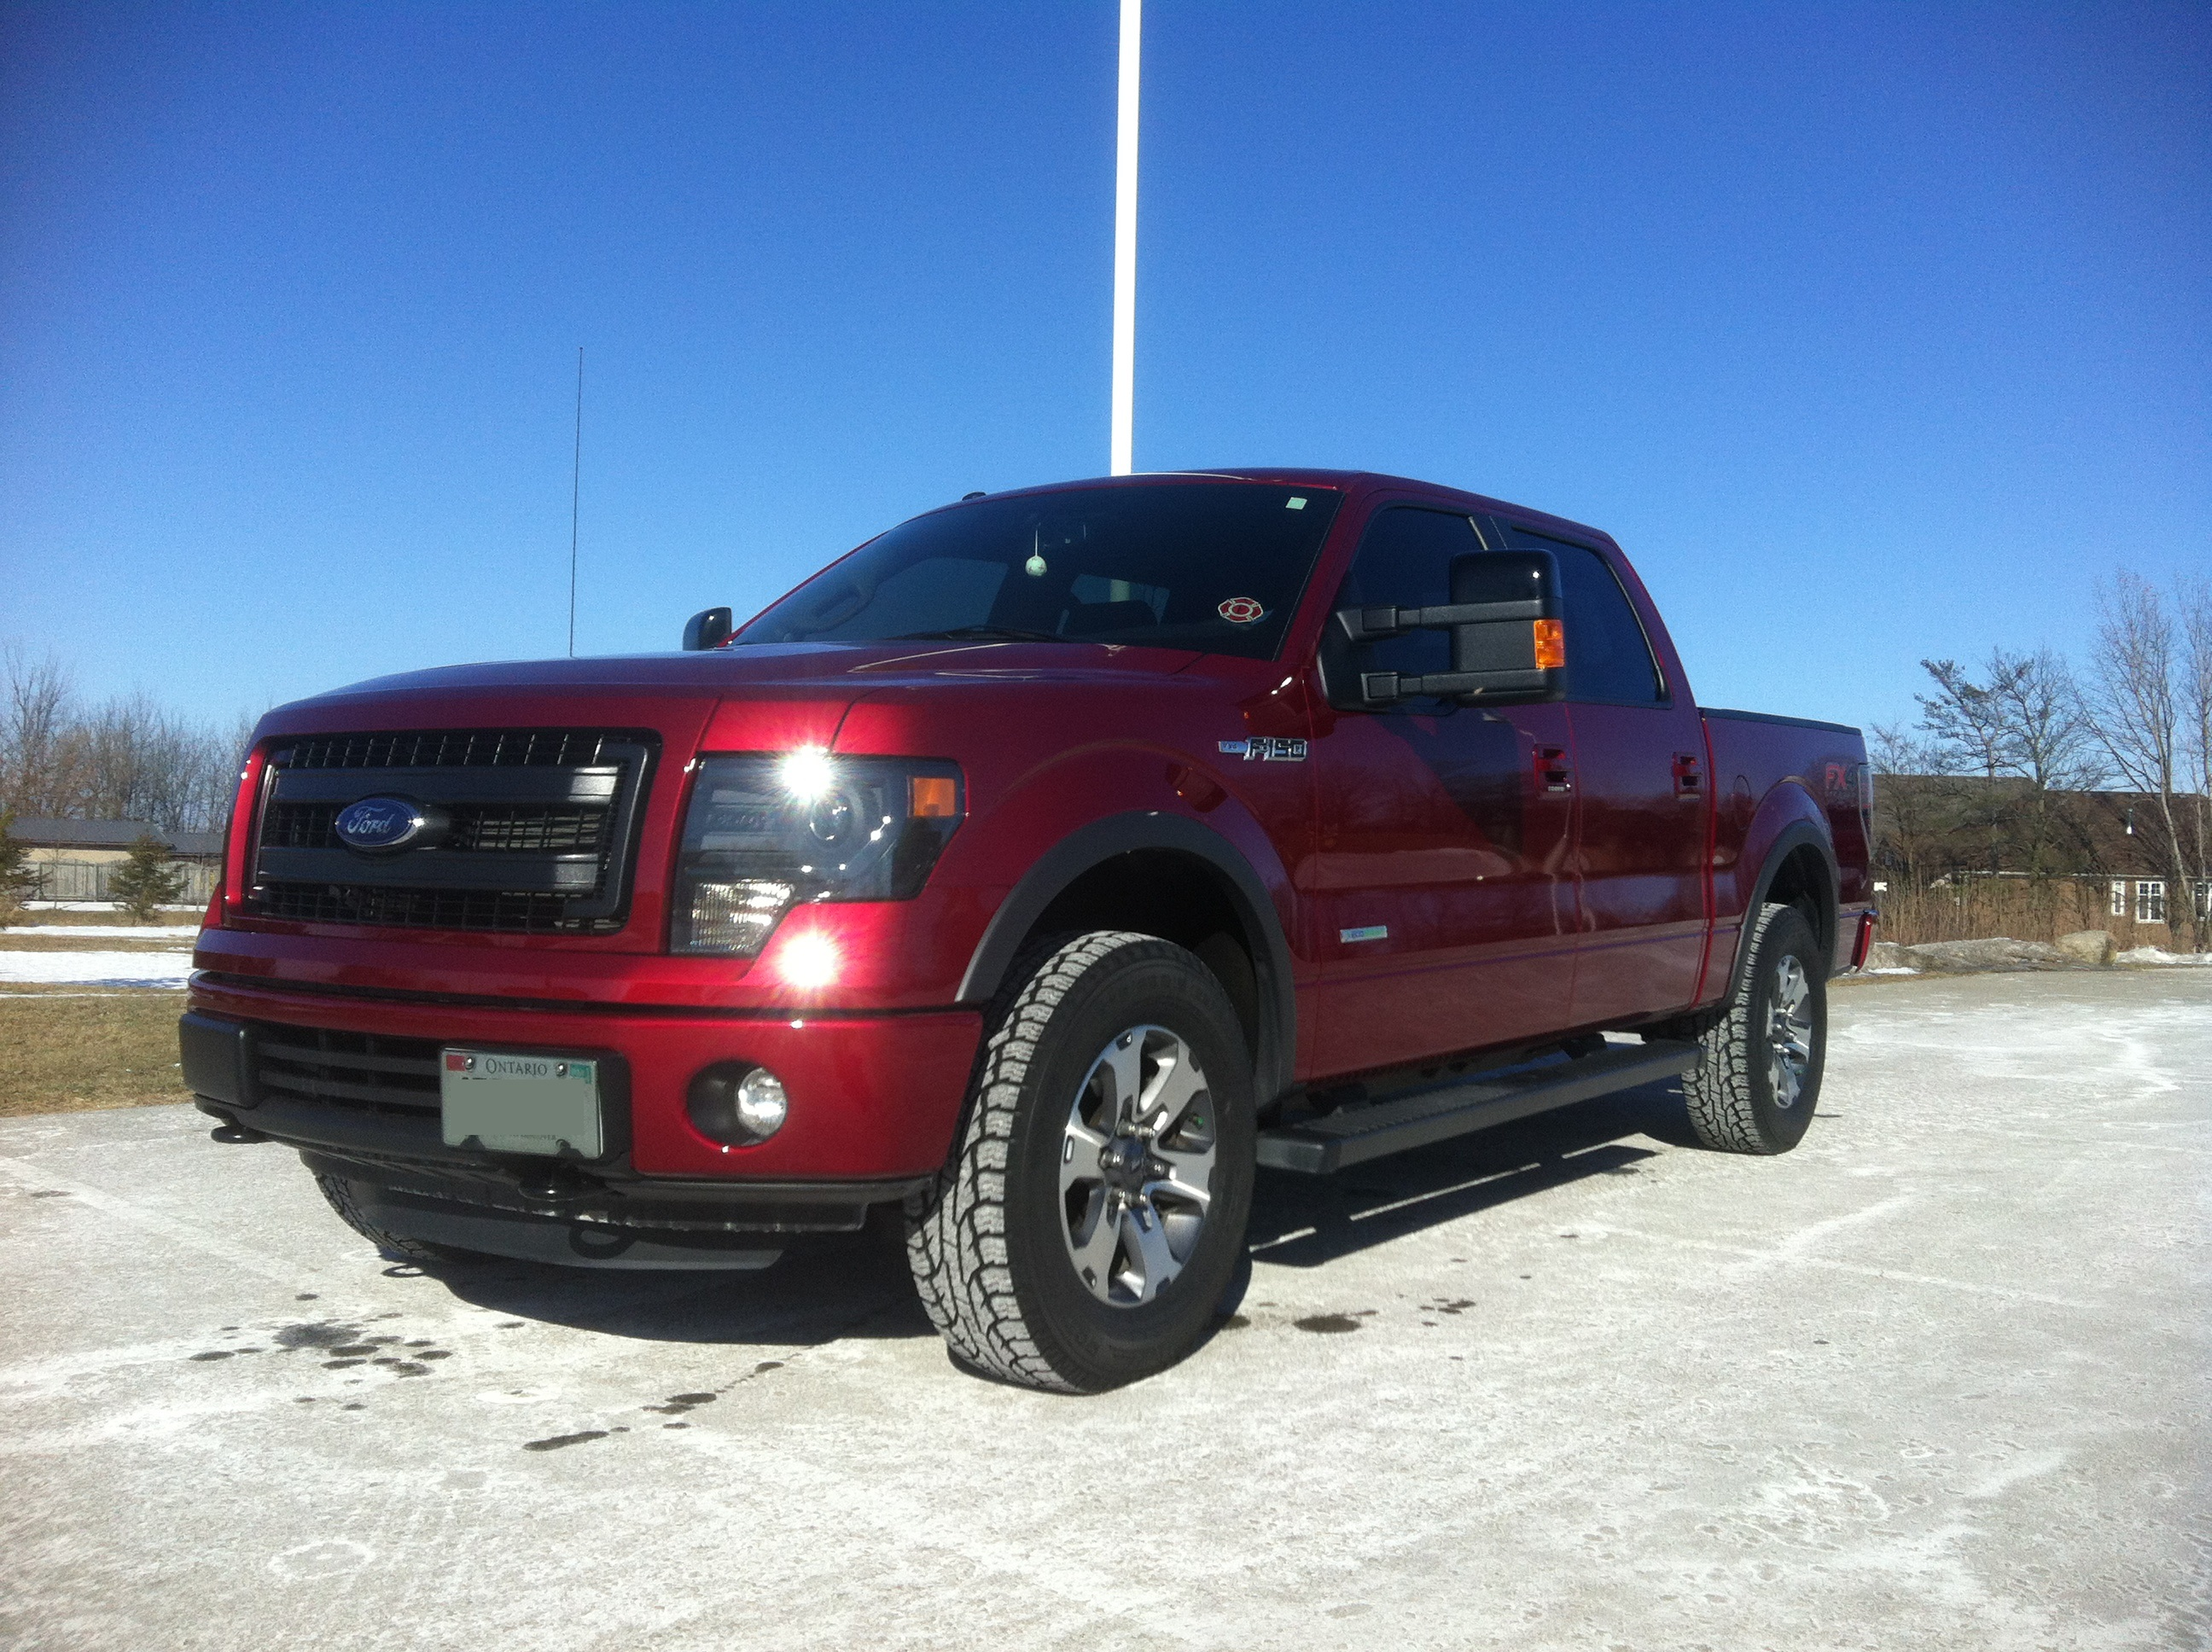 March 2014 F150 Truck of the Month Contest - Page 2